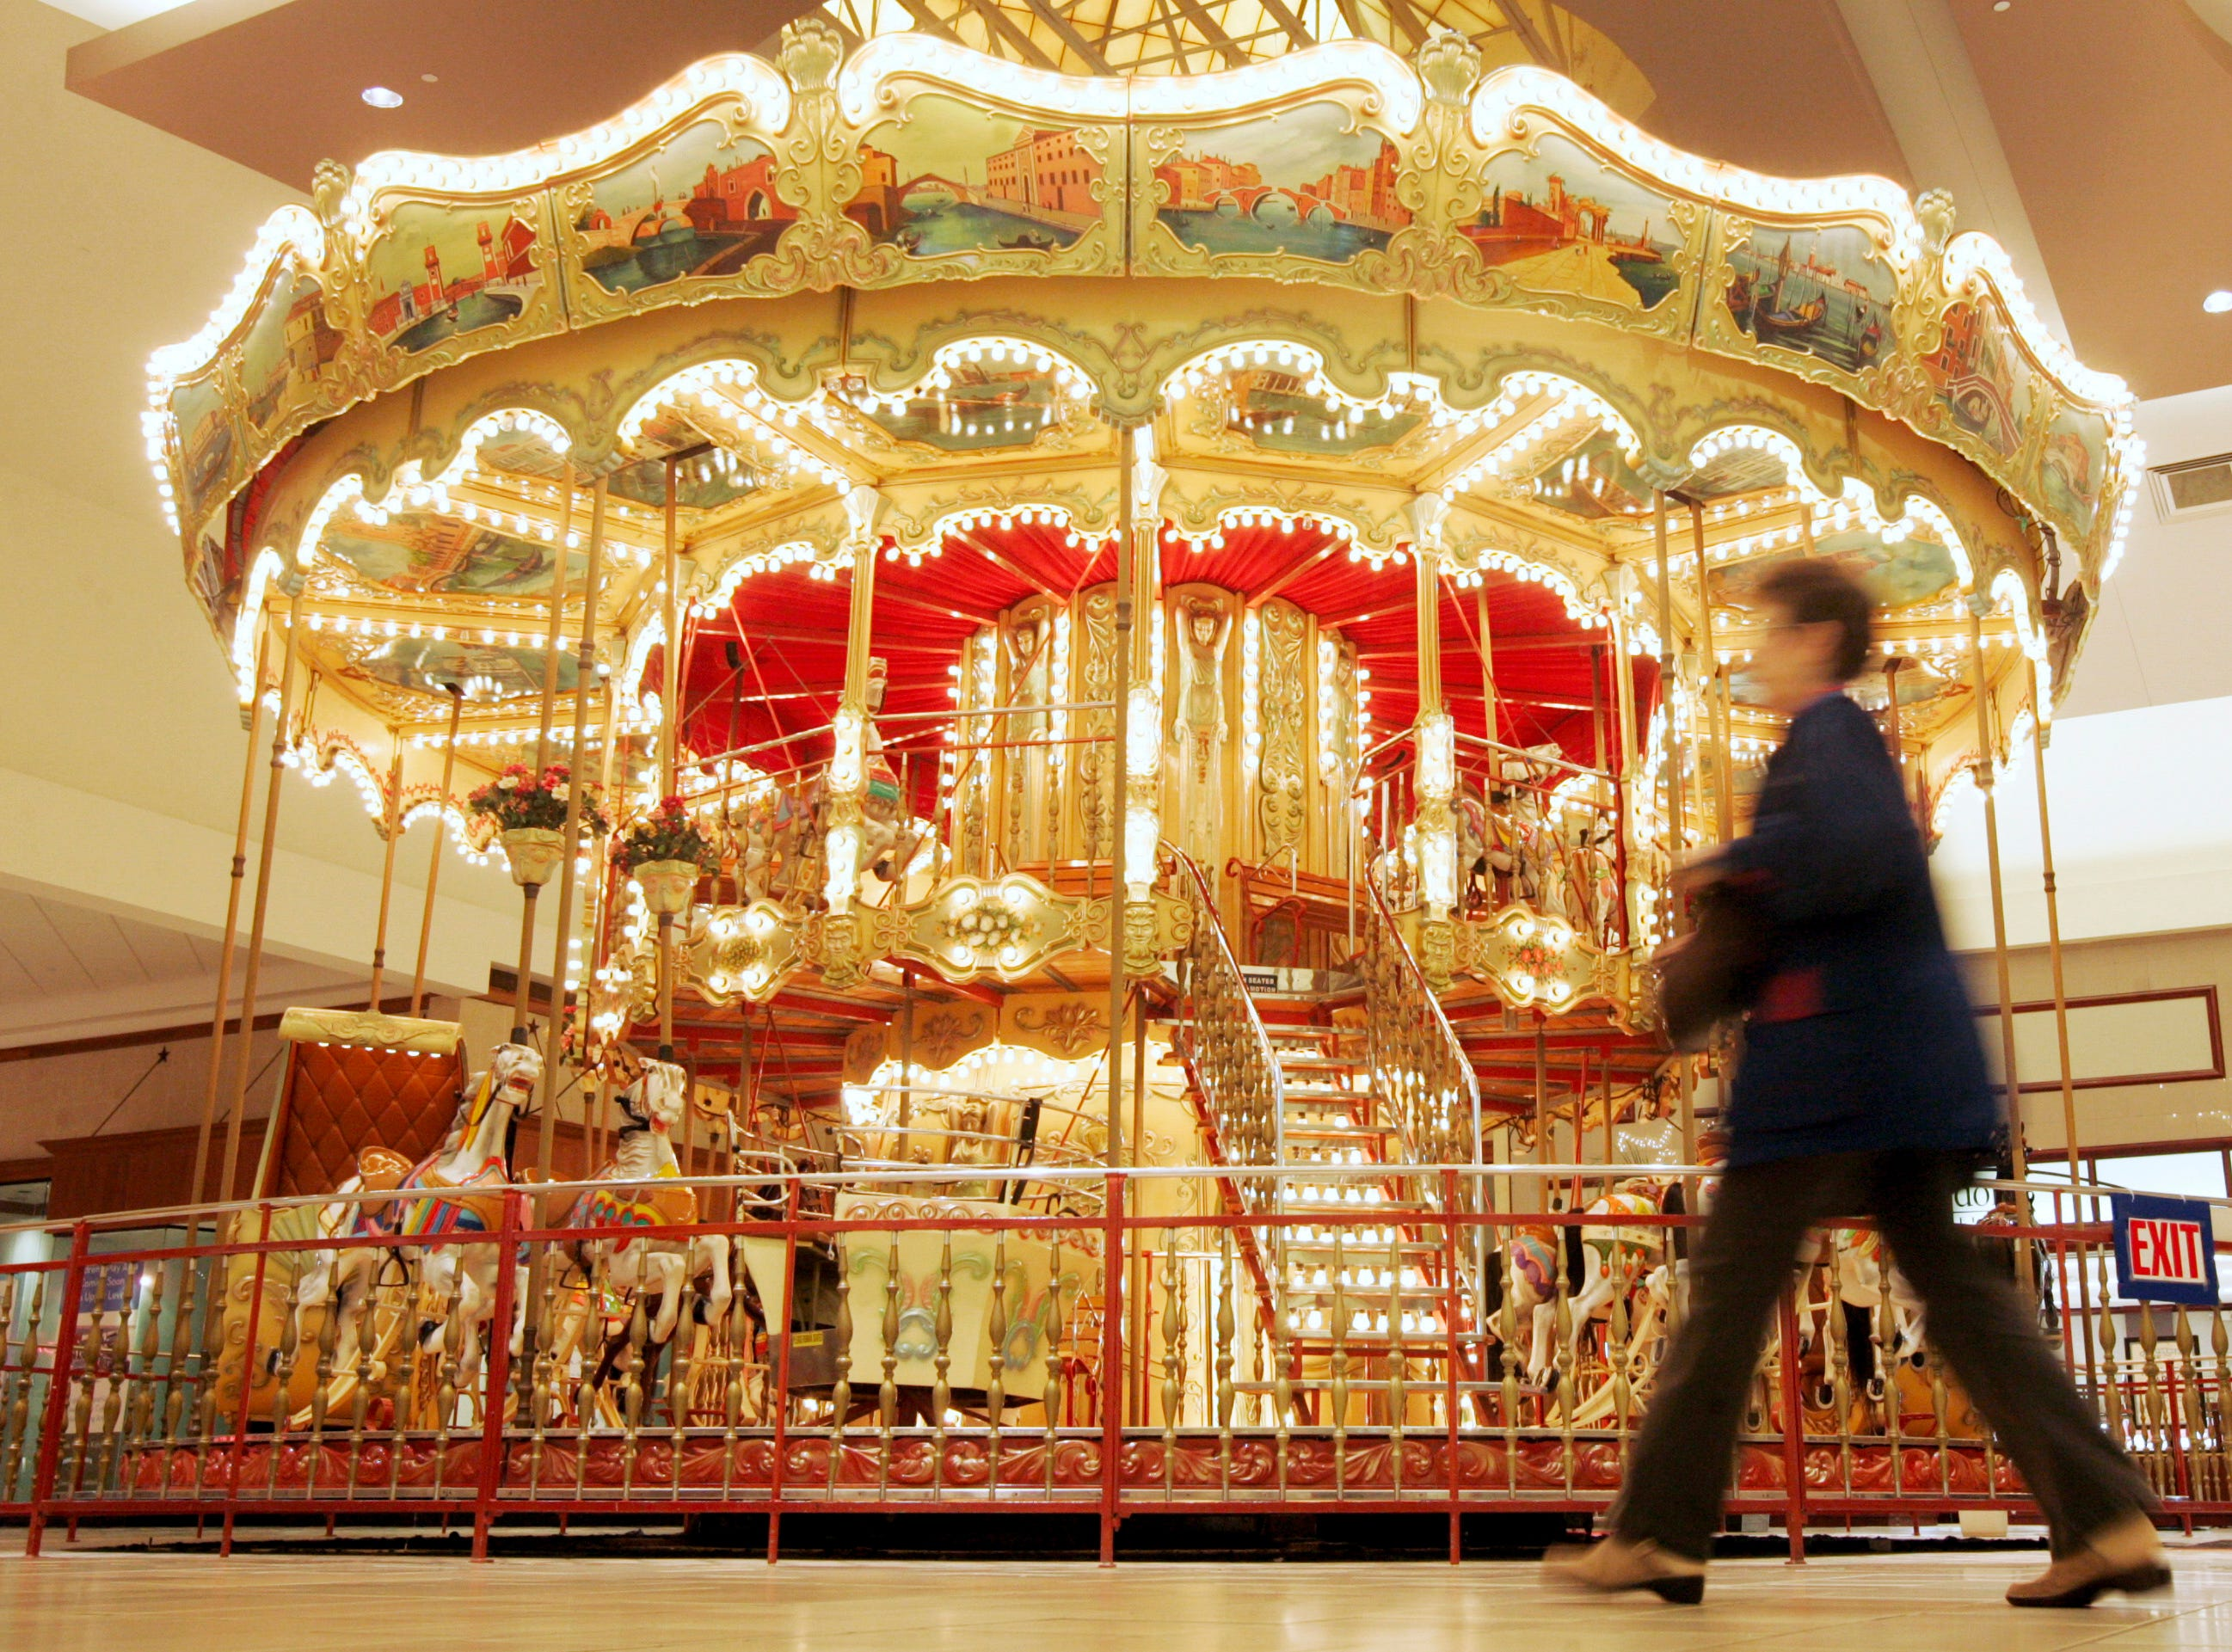 Mall patrons walk past the 25-foot tall carousel Wednesday, Jan. 14, 2009 located inside of La Palmera in Corpus Christi. Mall officials said the owners have until Jan. 31 to be out of the mall to make way for renovations and updates to the facility.